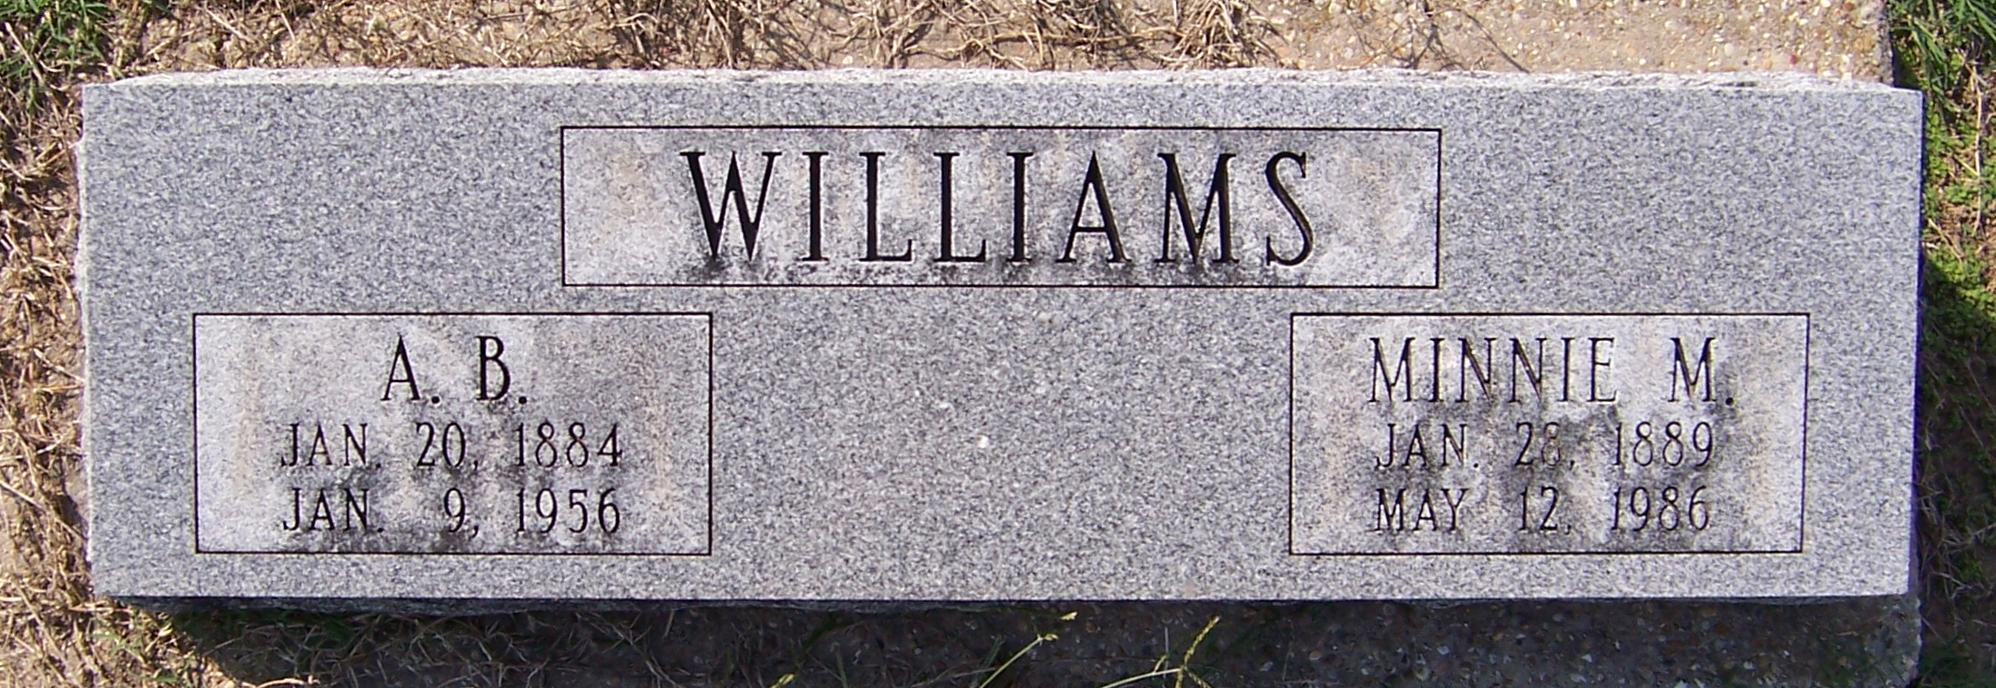 A B Williams